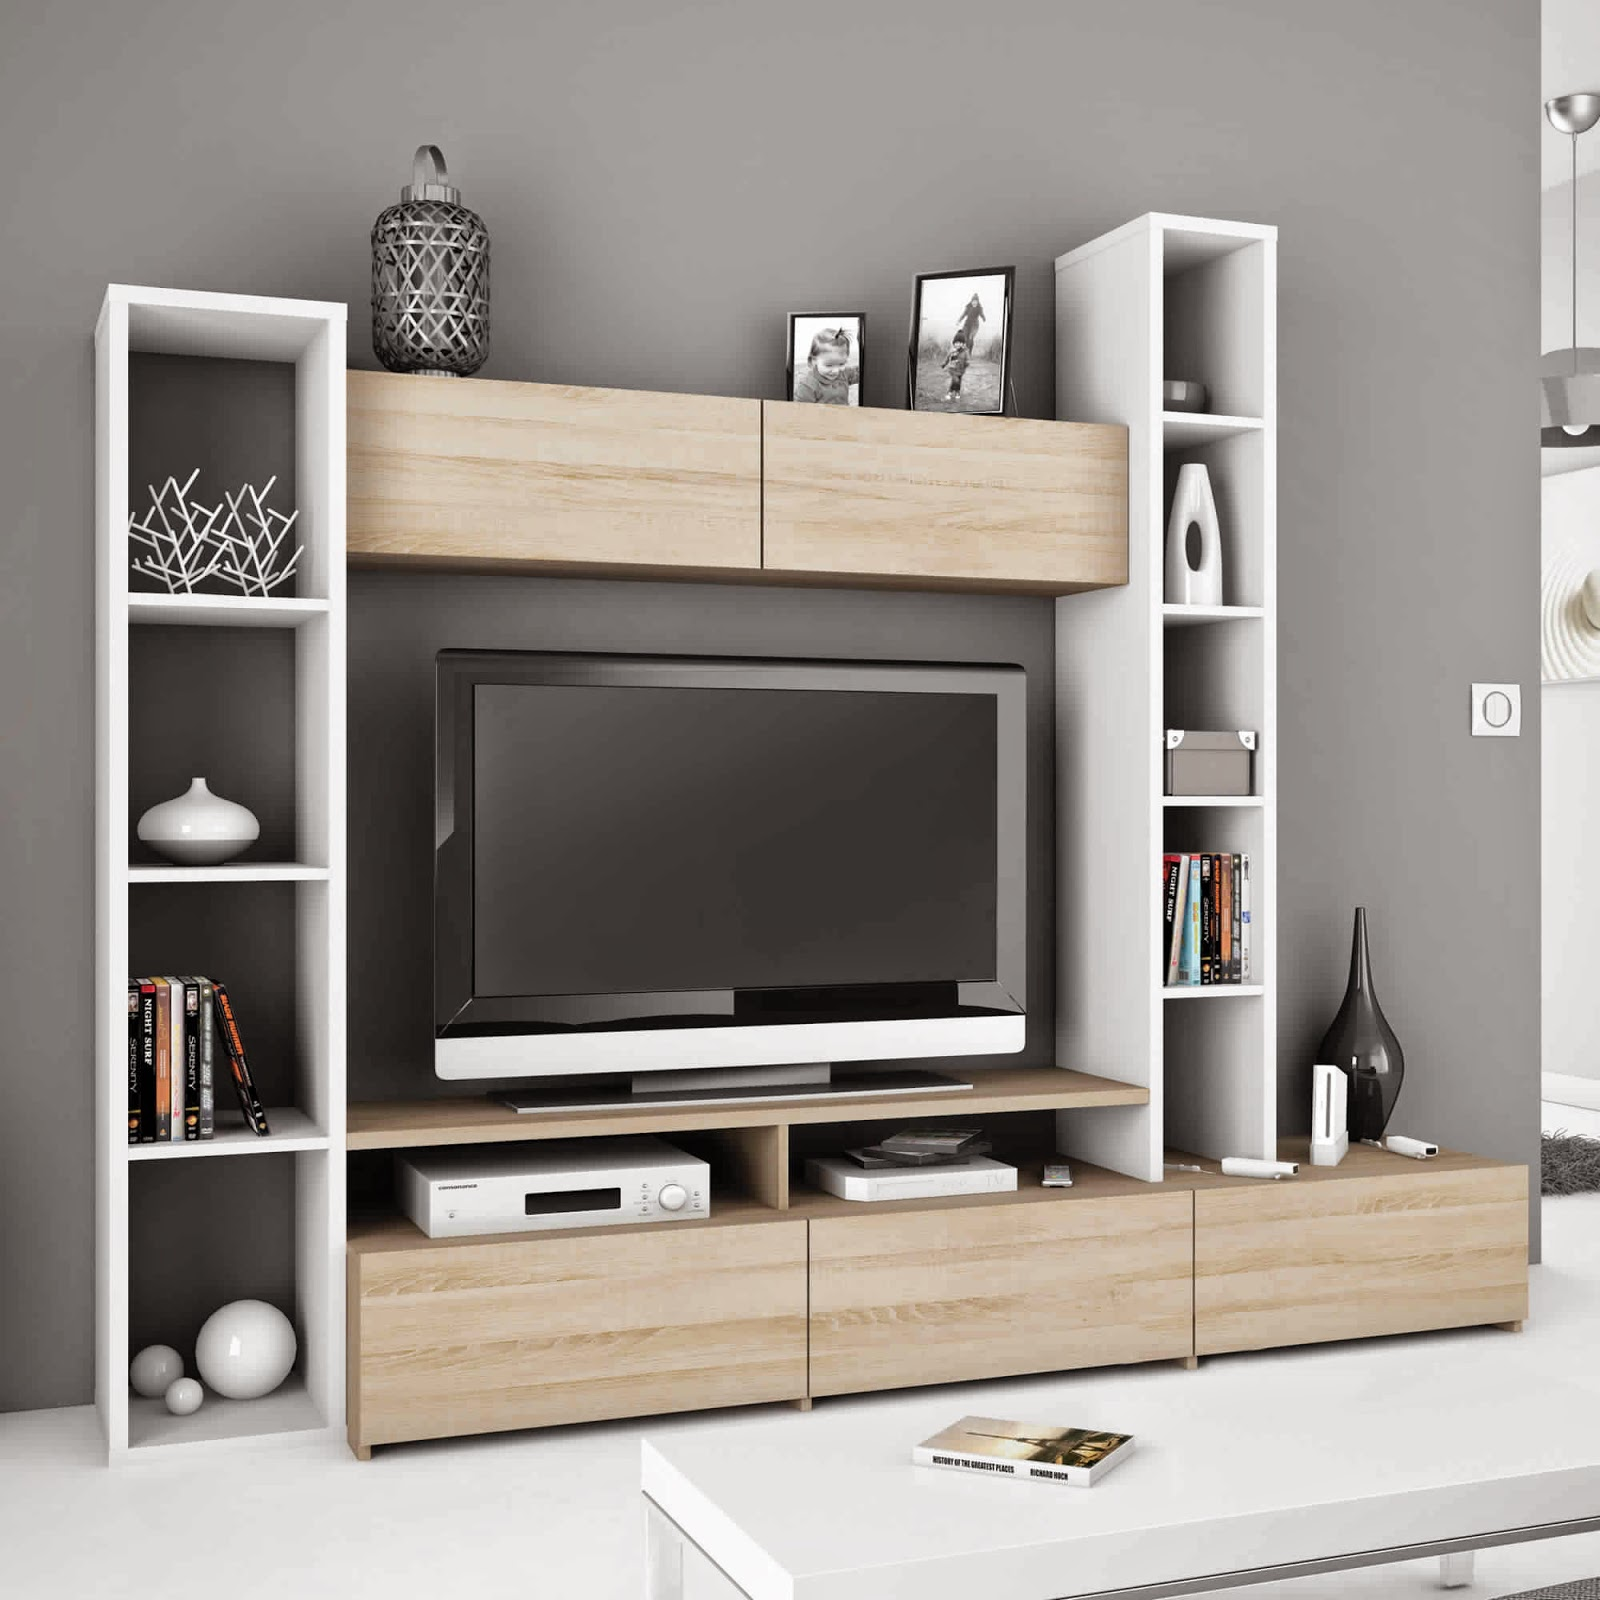 meuble tele rangement id es de d coration int rieure french decor. Black Bedroom Furniture Sets. Home Design Ideas